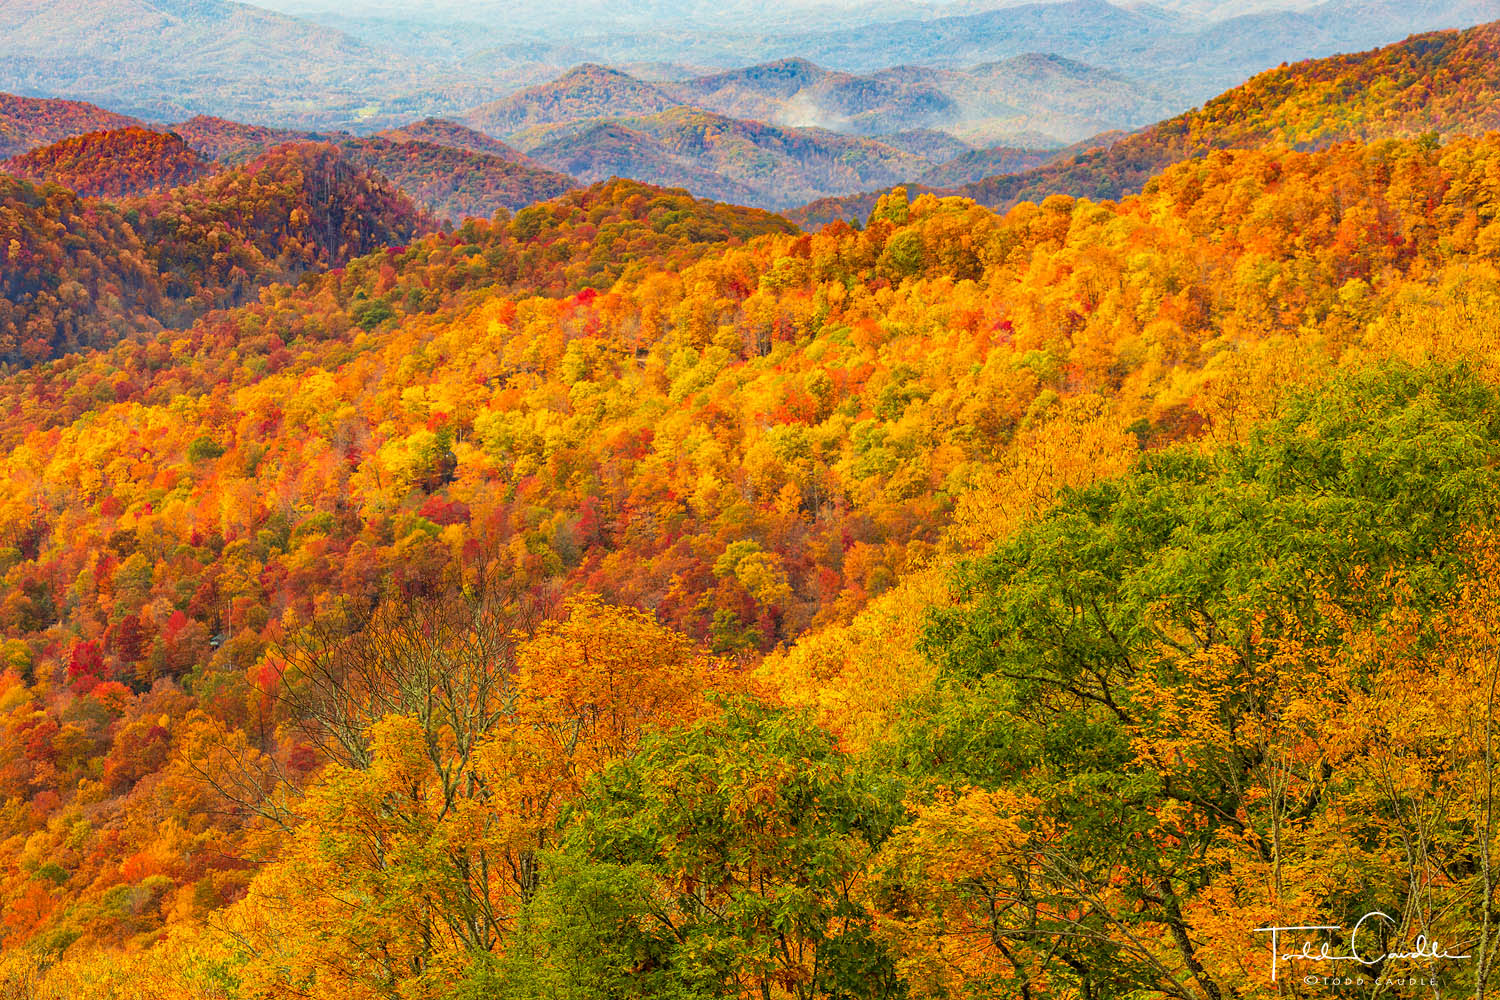 Fall color as far as the eye can see on Thunder Struck Ridge, along the Blue Ridge Parkway in North Carolina.